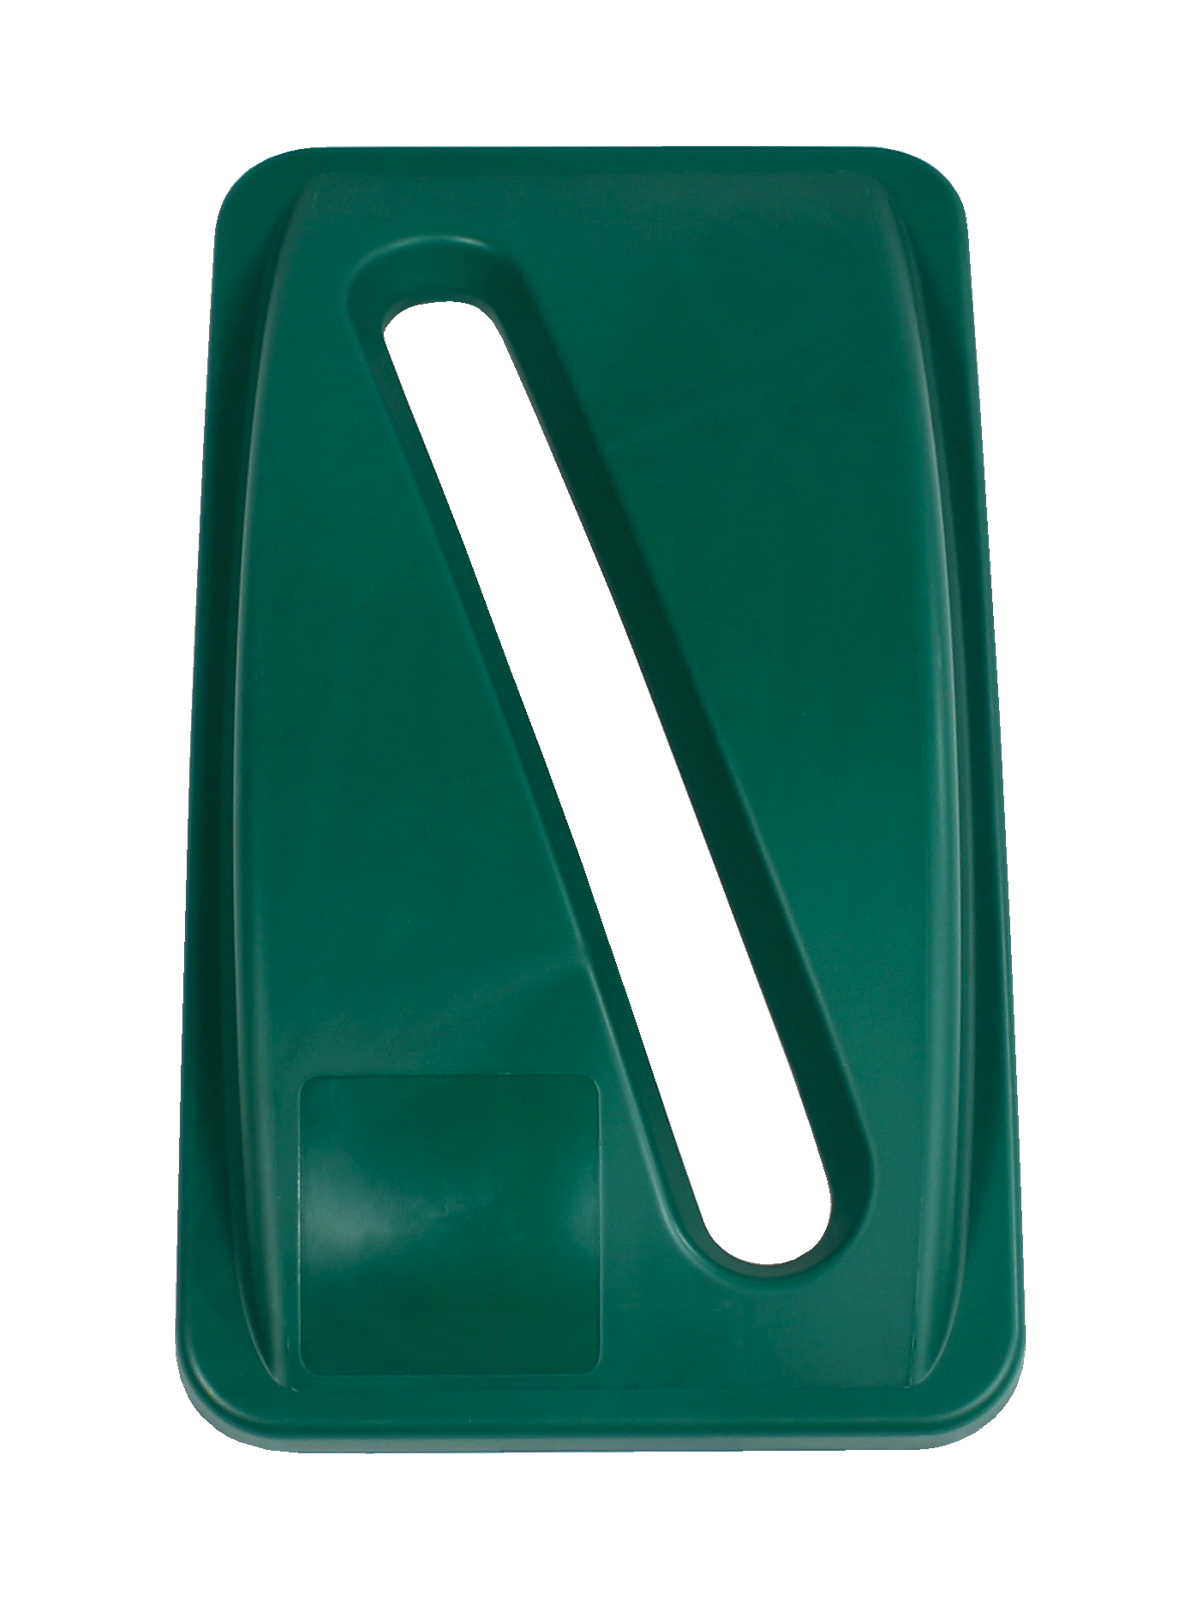 WASTE WATCHER - Single - Lid - Slot - Dark Green